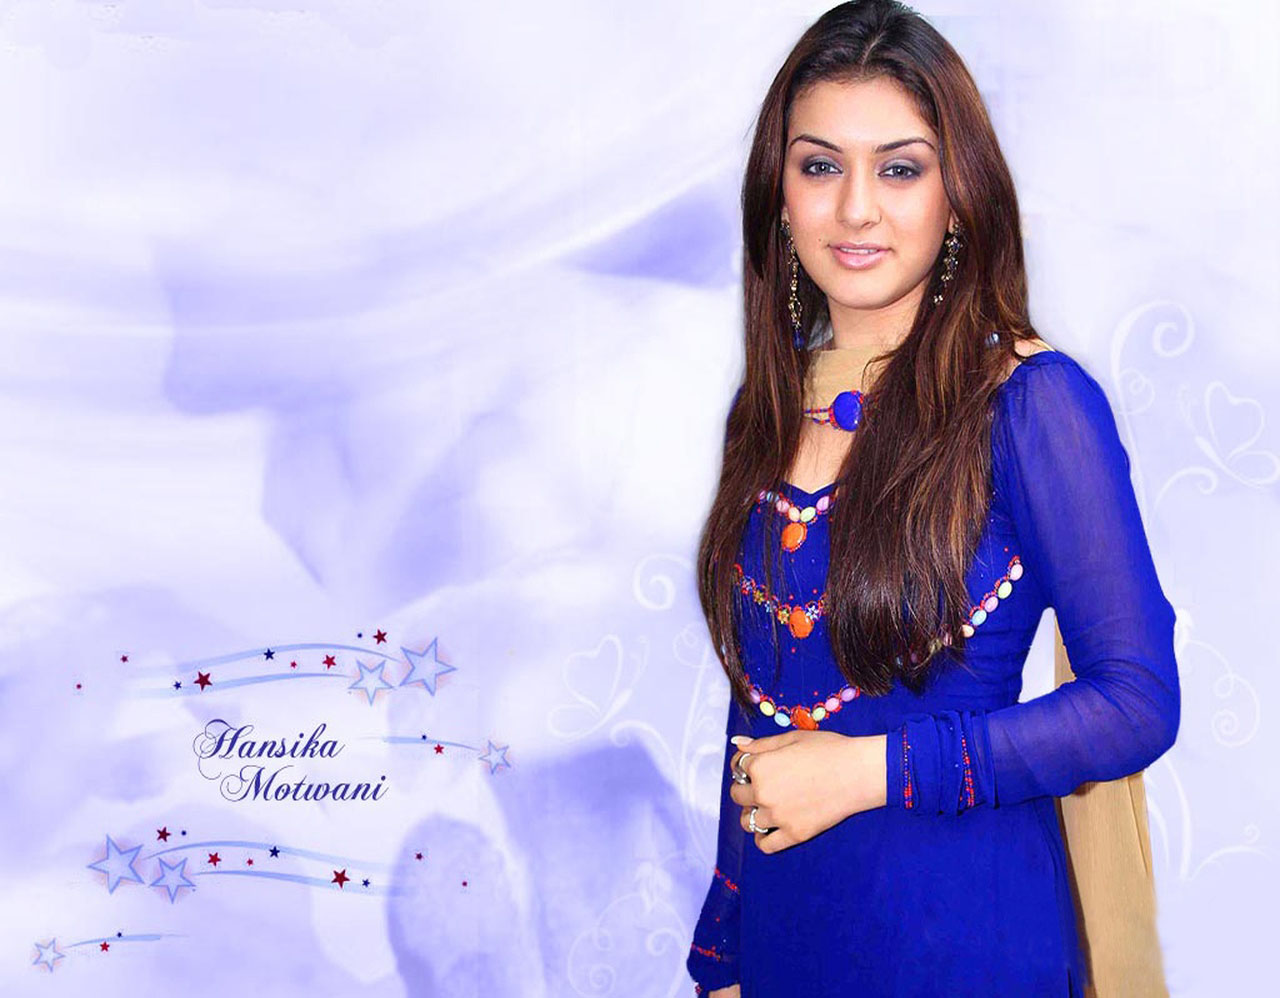 Hansika Motwani Blue Dress Snap